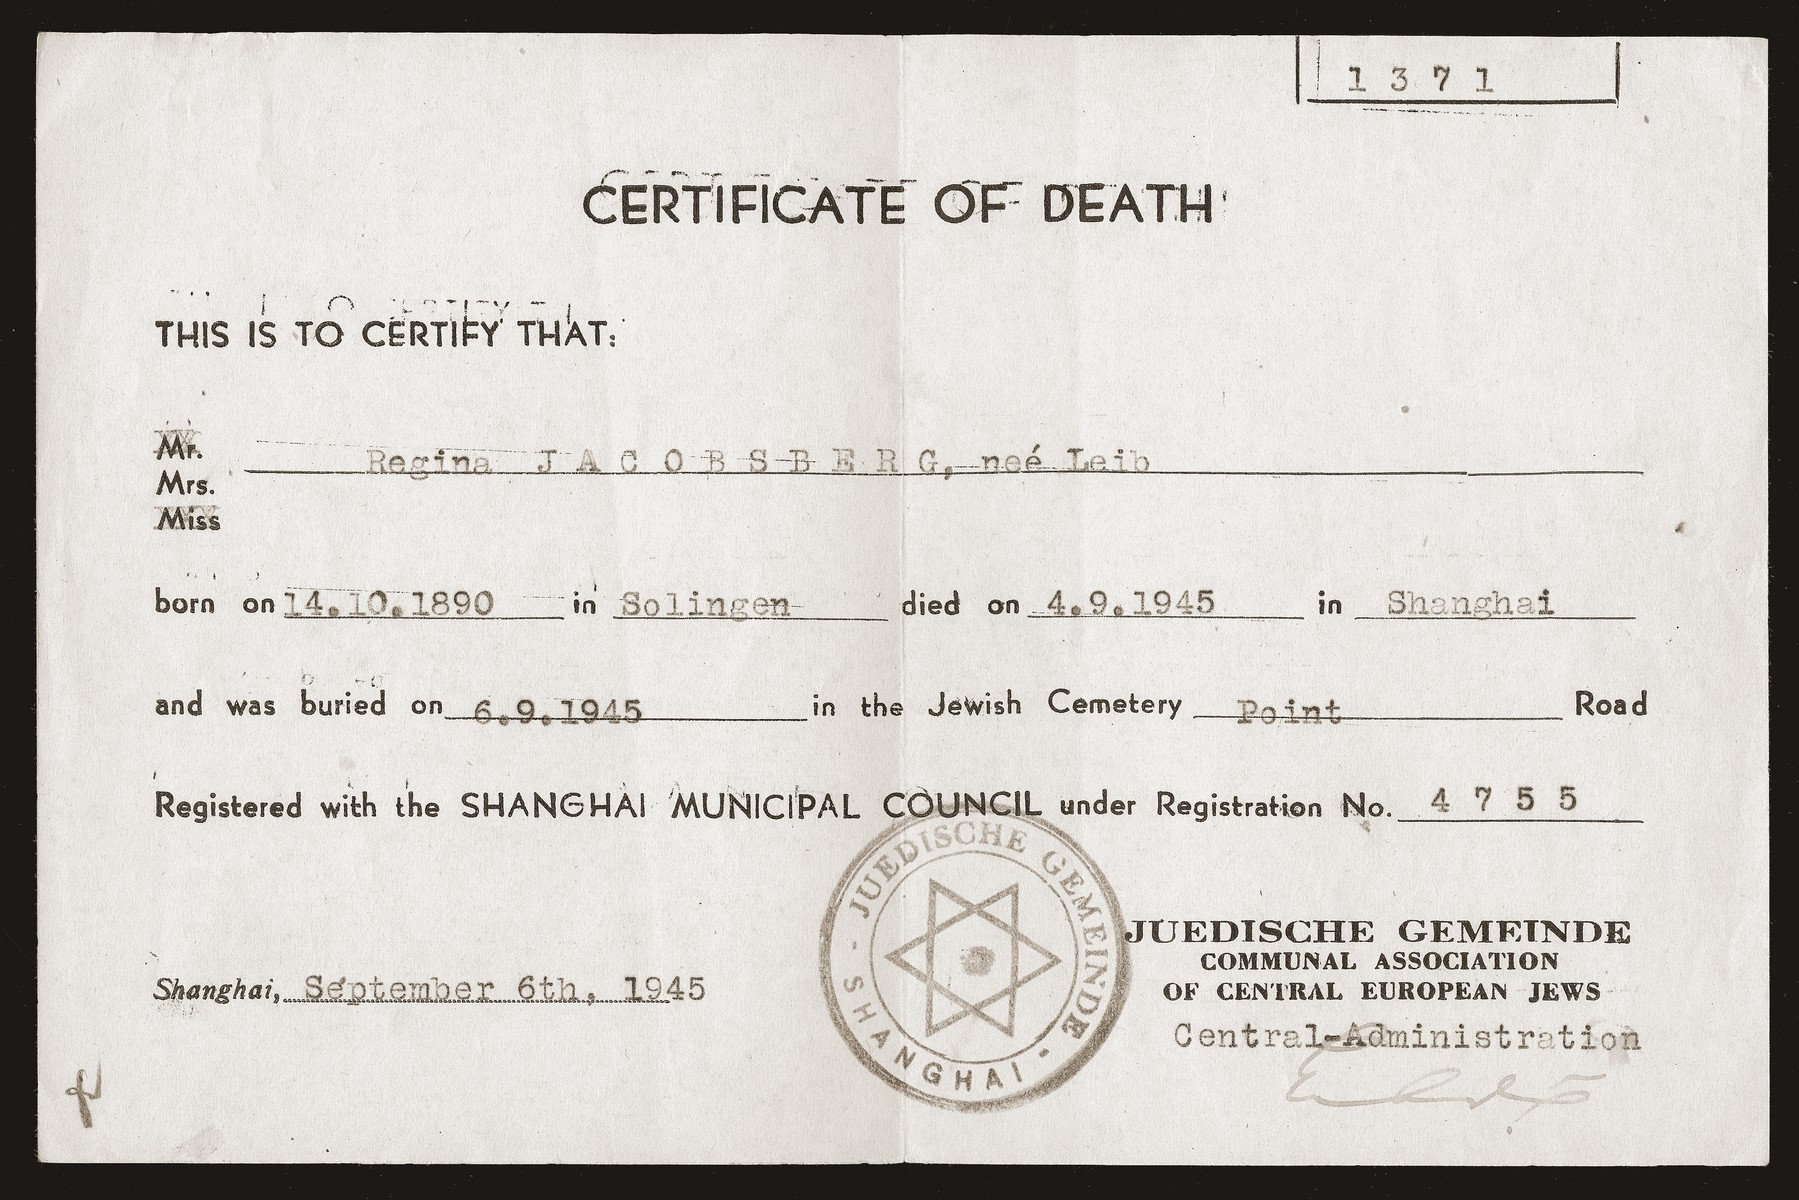 The death certificate of Regina Leib Jacobsberg issued by the Jewish community [Juedische Gemeinde] of Shanghai.